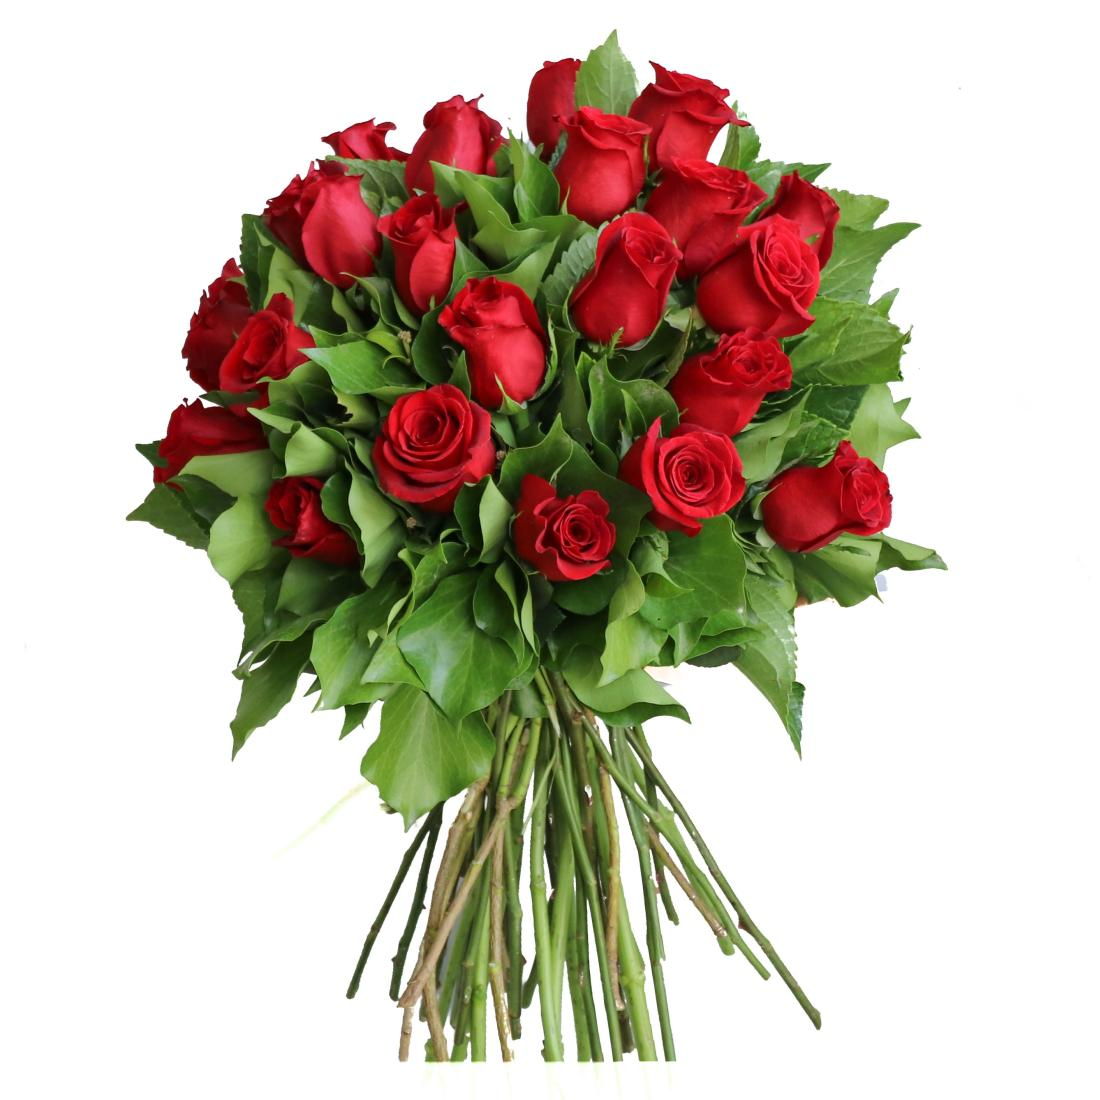 Allure - 24 Red Roses